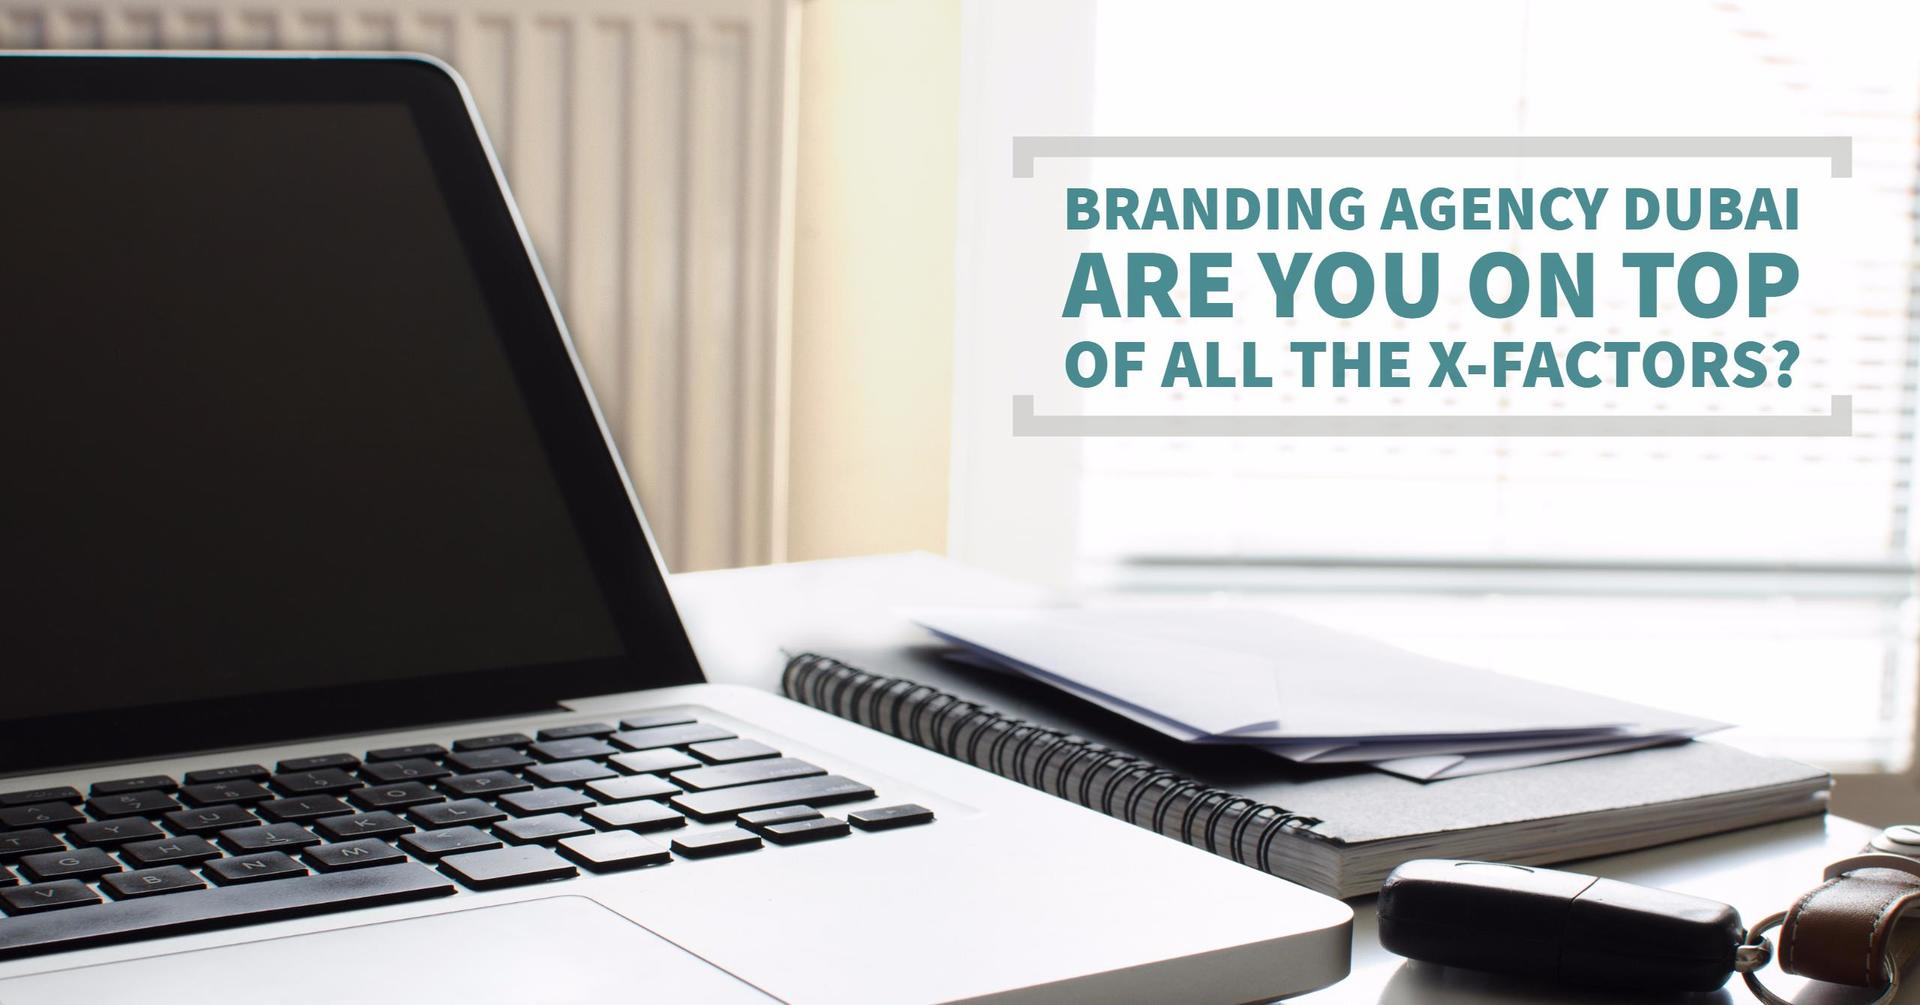 Branding Agency Dubai - Are You On Top Of All The X-Factors